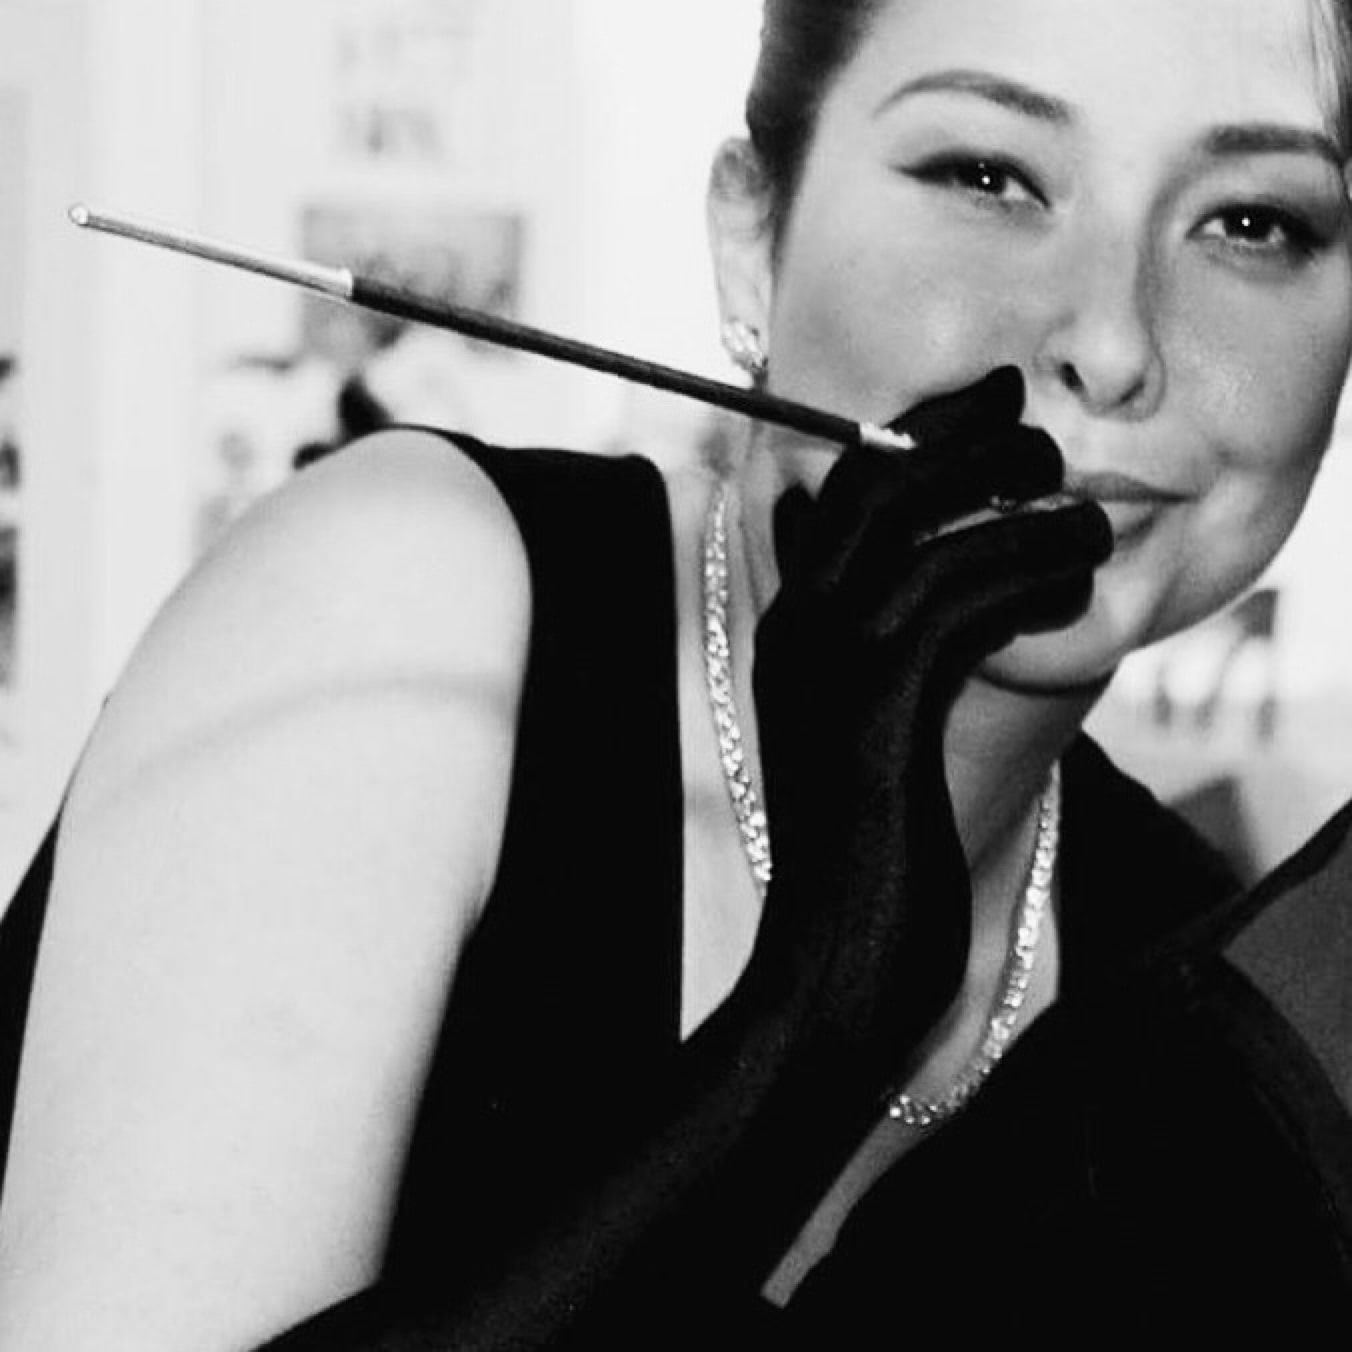 Dressing up as my favourite icon. #audreyhepburn #breakfastattiffanys #makeuptransformation #makeupartist #makeupbynikkineeladri #black-and-white #classic #movies #soroposo ##roposo